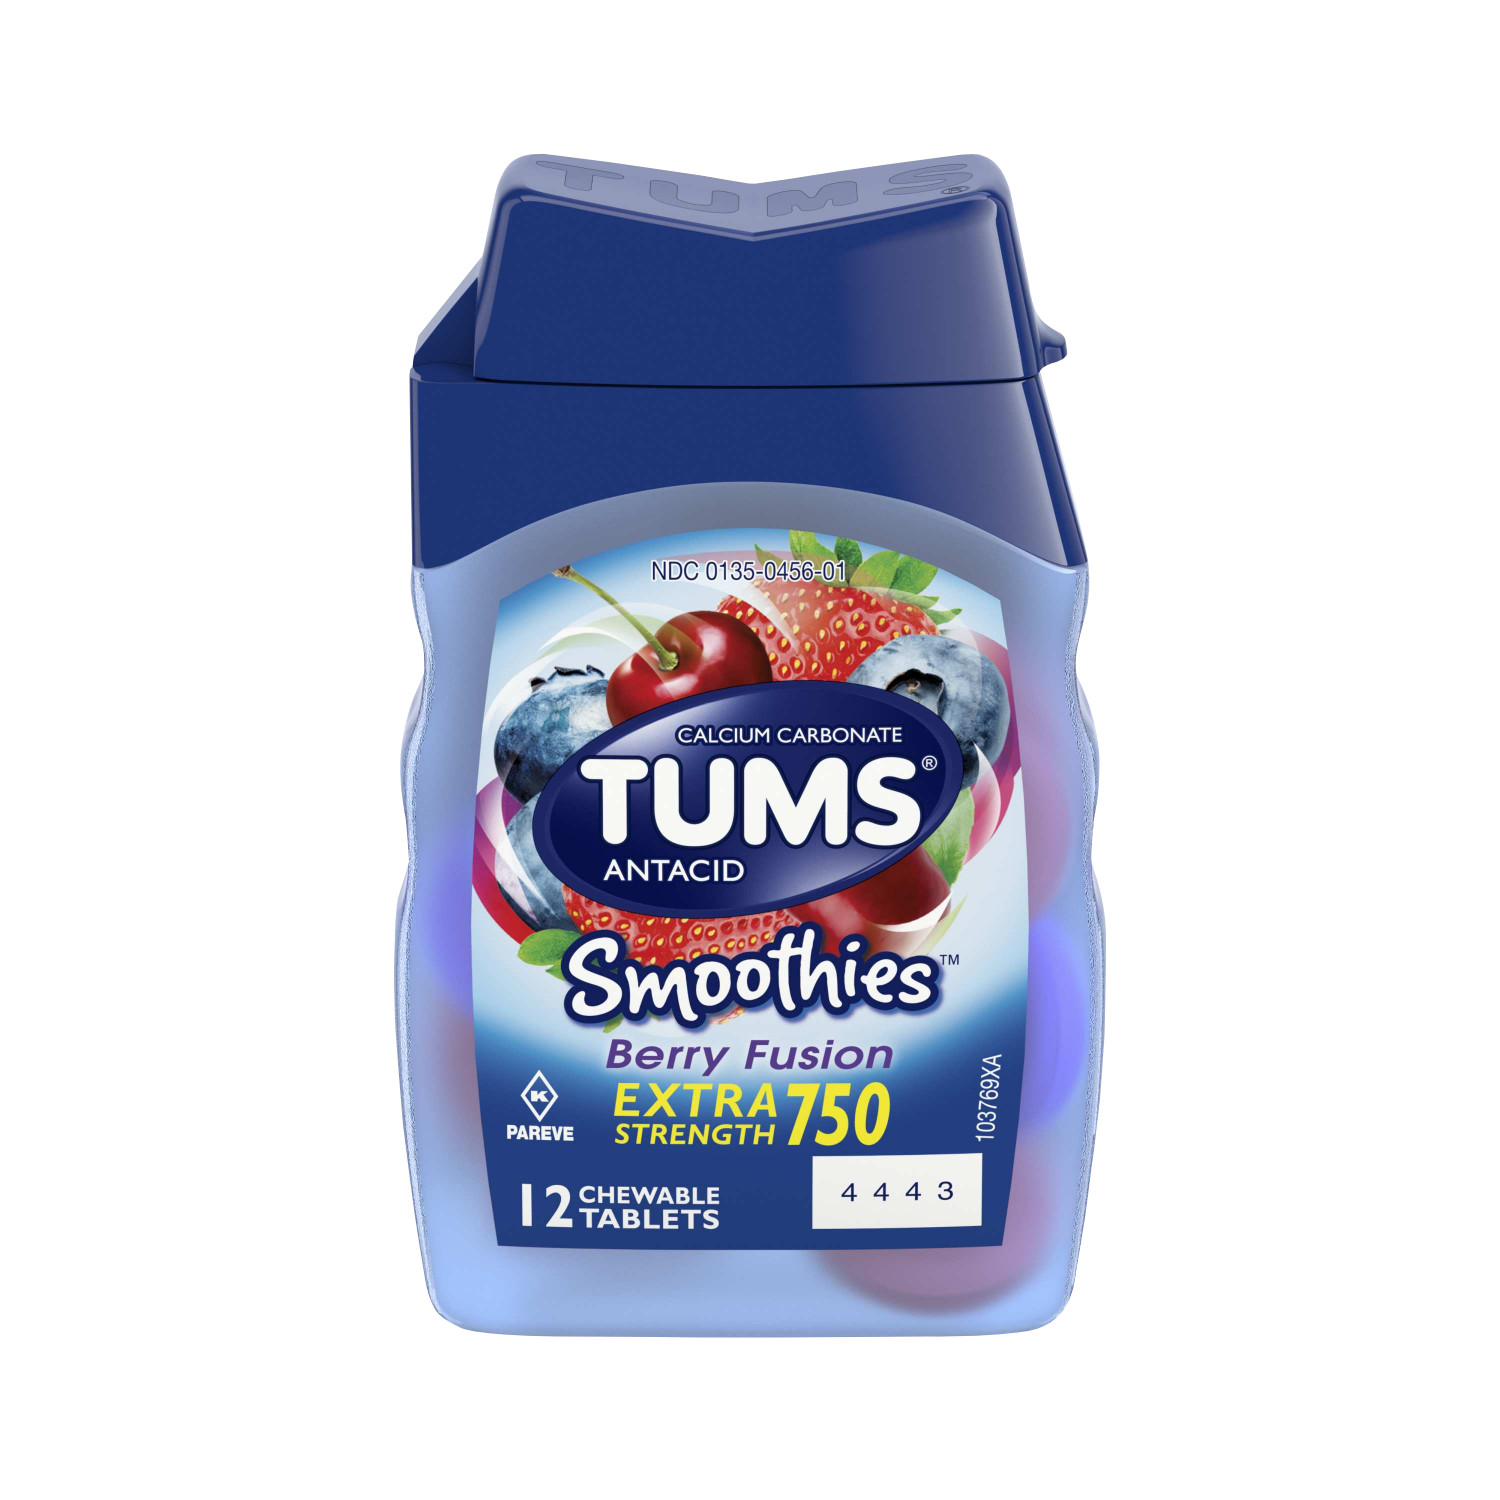 (2 Pack) Tums smoothies berry fusion extra strength antacid chewable tablets for heartburn relief, 12 tablets